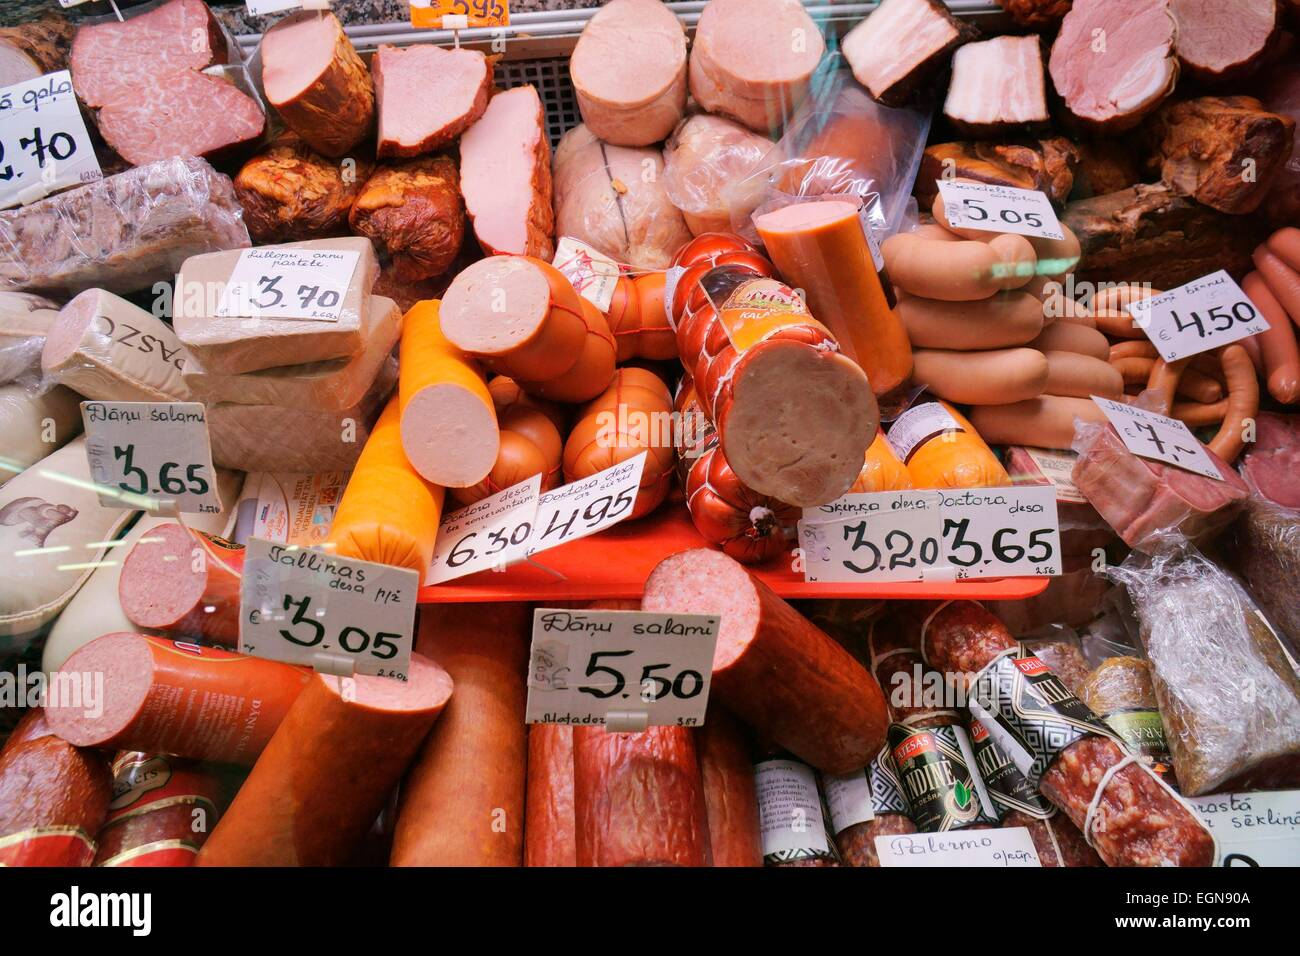 Riga Latvia. Varieties of cured sausage salami pressed meat in the Centraltirgus, largest food market in the Baltic - Stock Image